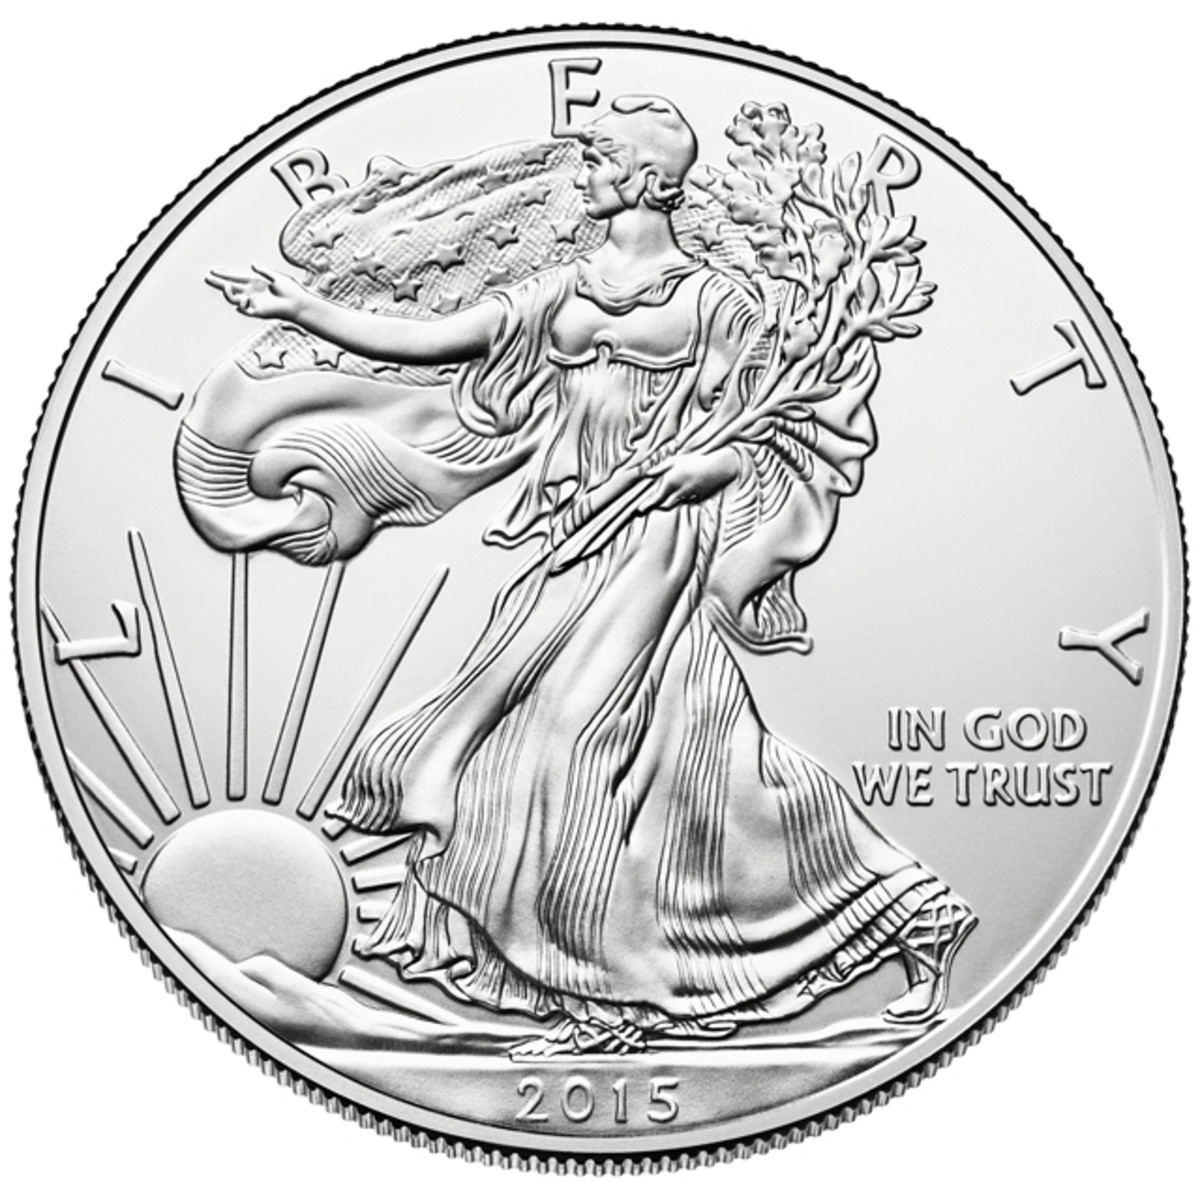 When asked if now was a good time to buy silver, Julian Jarvis said it's much better than when the price was higher.